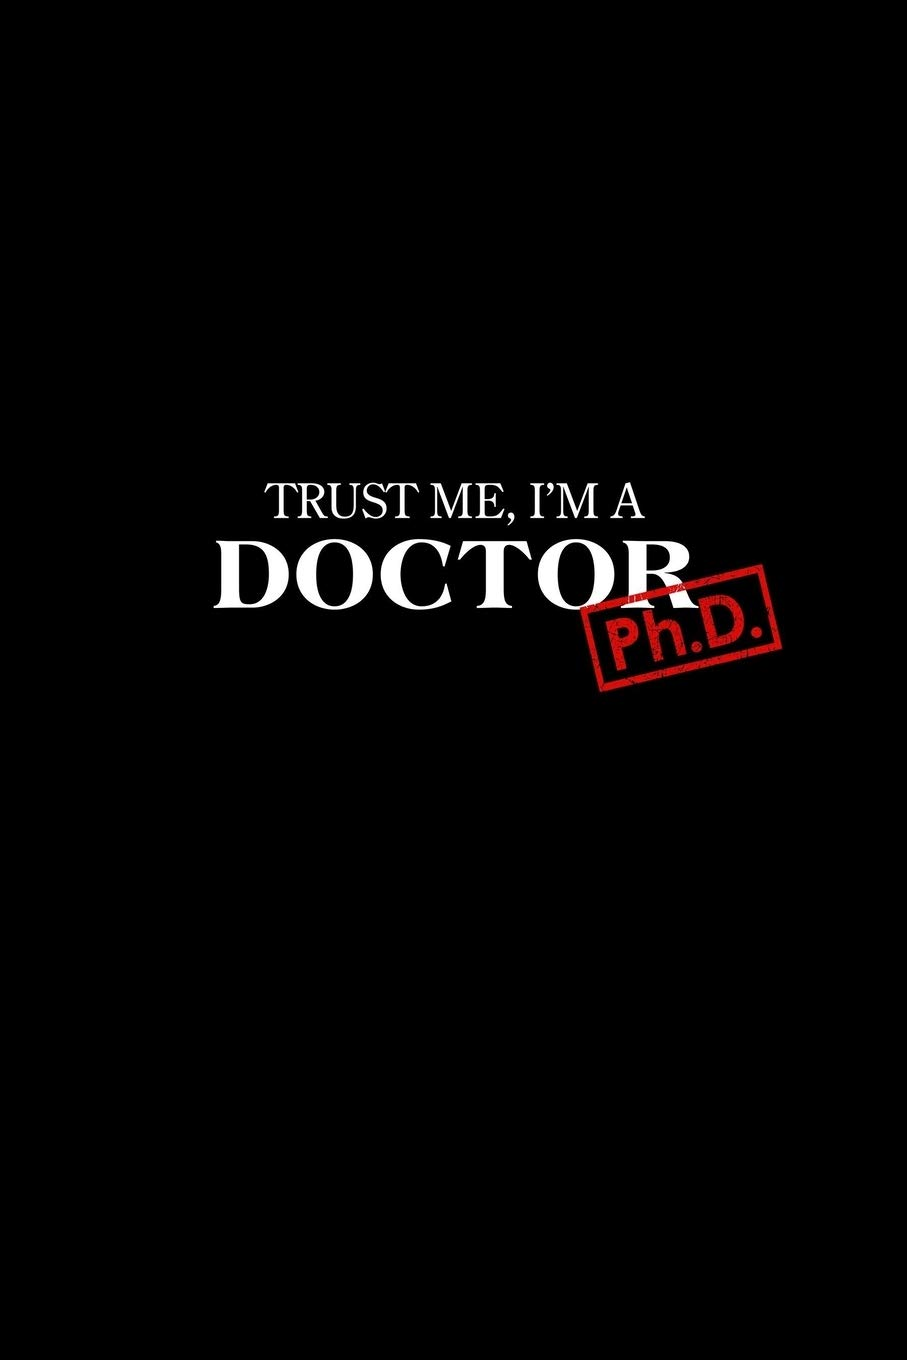 Trust Me I'm A Doctor   Ph.D. Graduation New Doctors Gift 120 Lined Pages Journal Diary Notebook  6x9